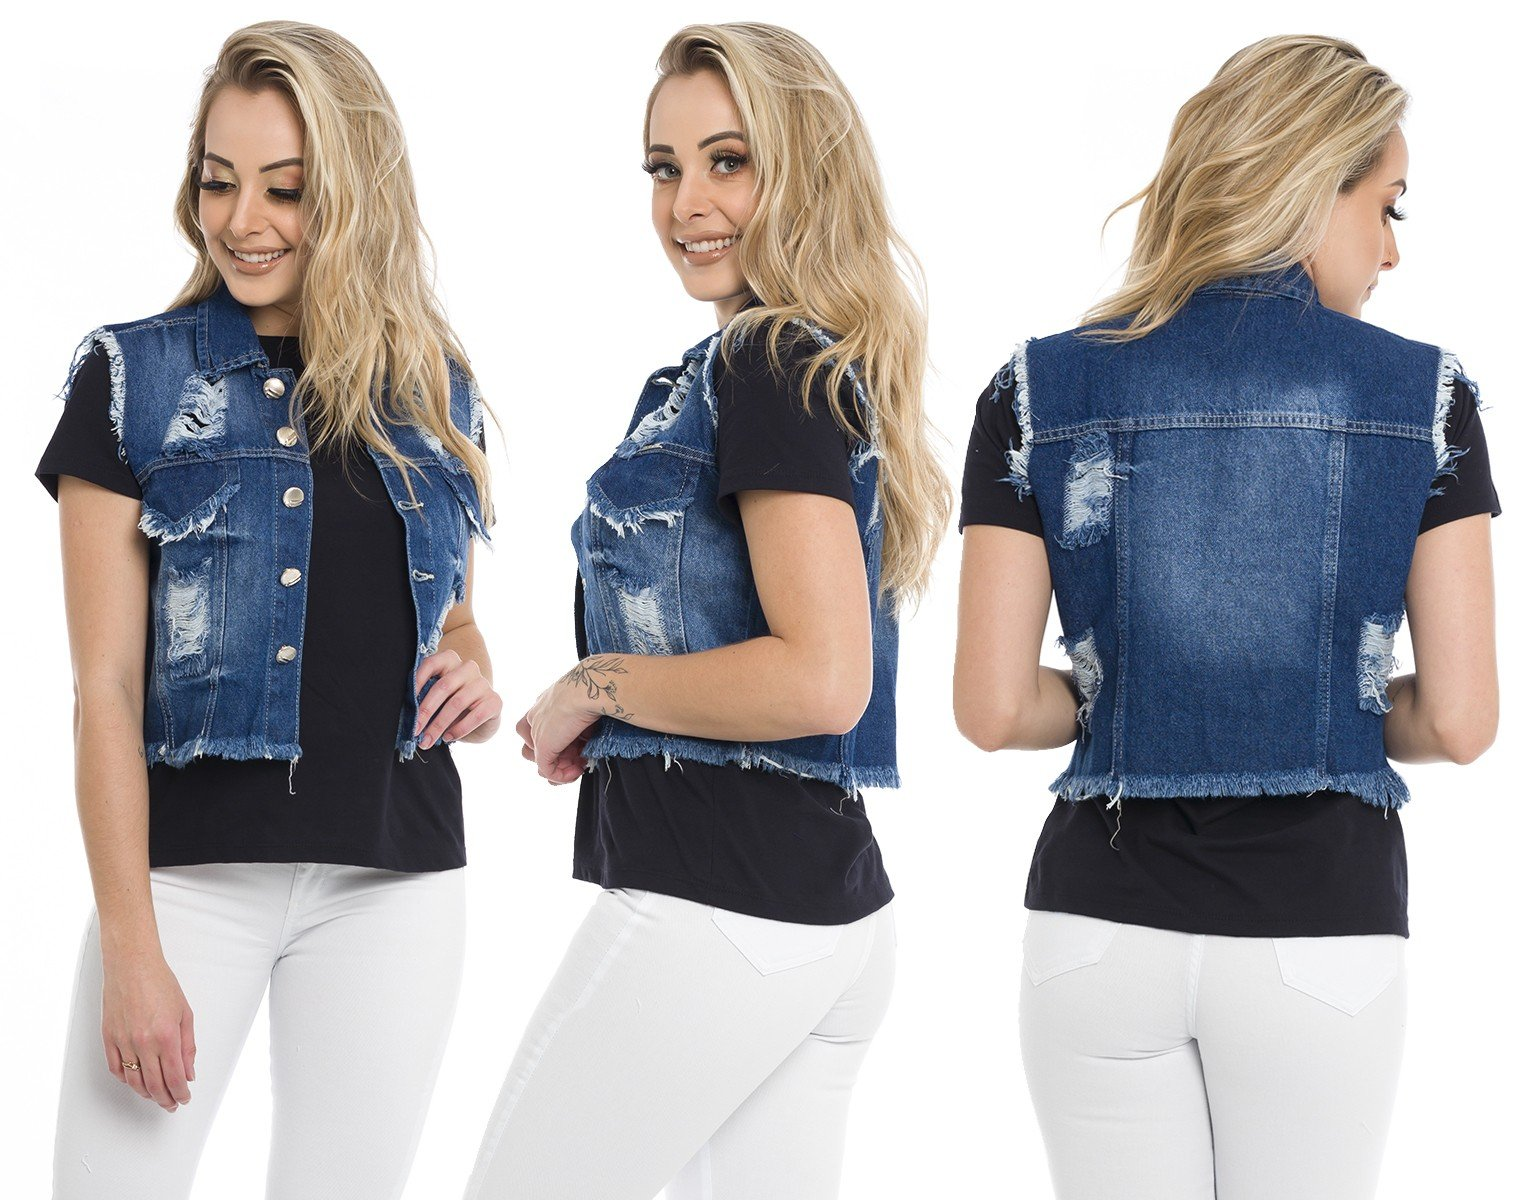 812805  Colete Jeans Curto Destroyed (Completa)